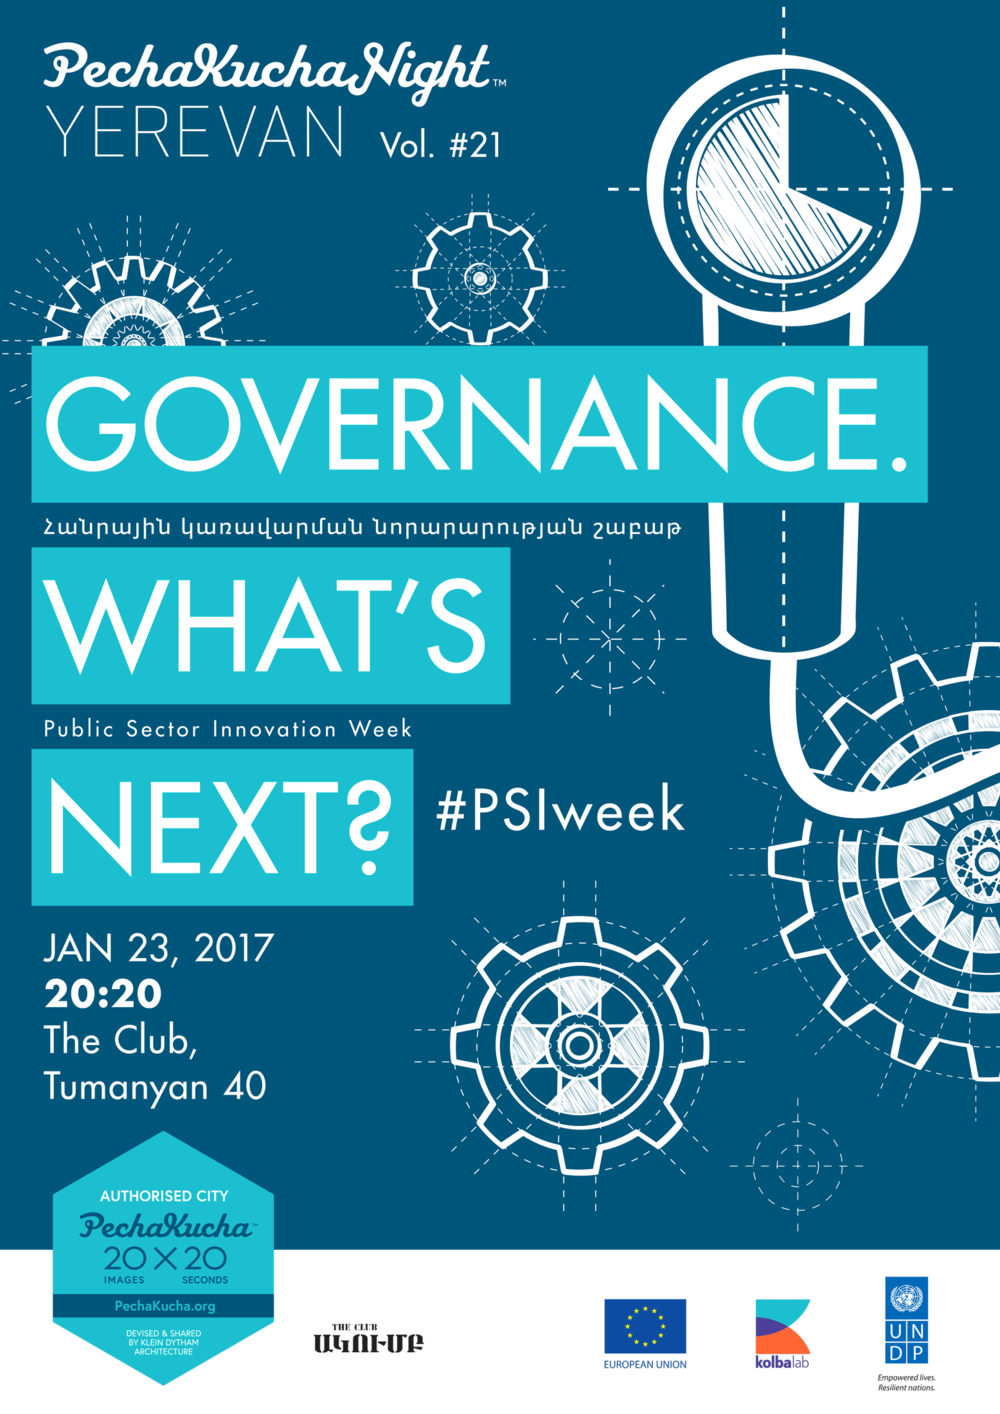 Vol. 21 - Governance: What's Next? - Understanding how best practices from business and tech industries can be applied in public governance, what changes can we expect, and how policymakers and citizens should respond.